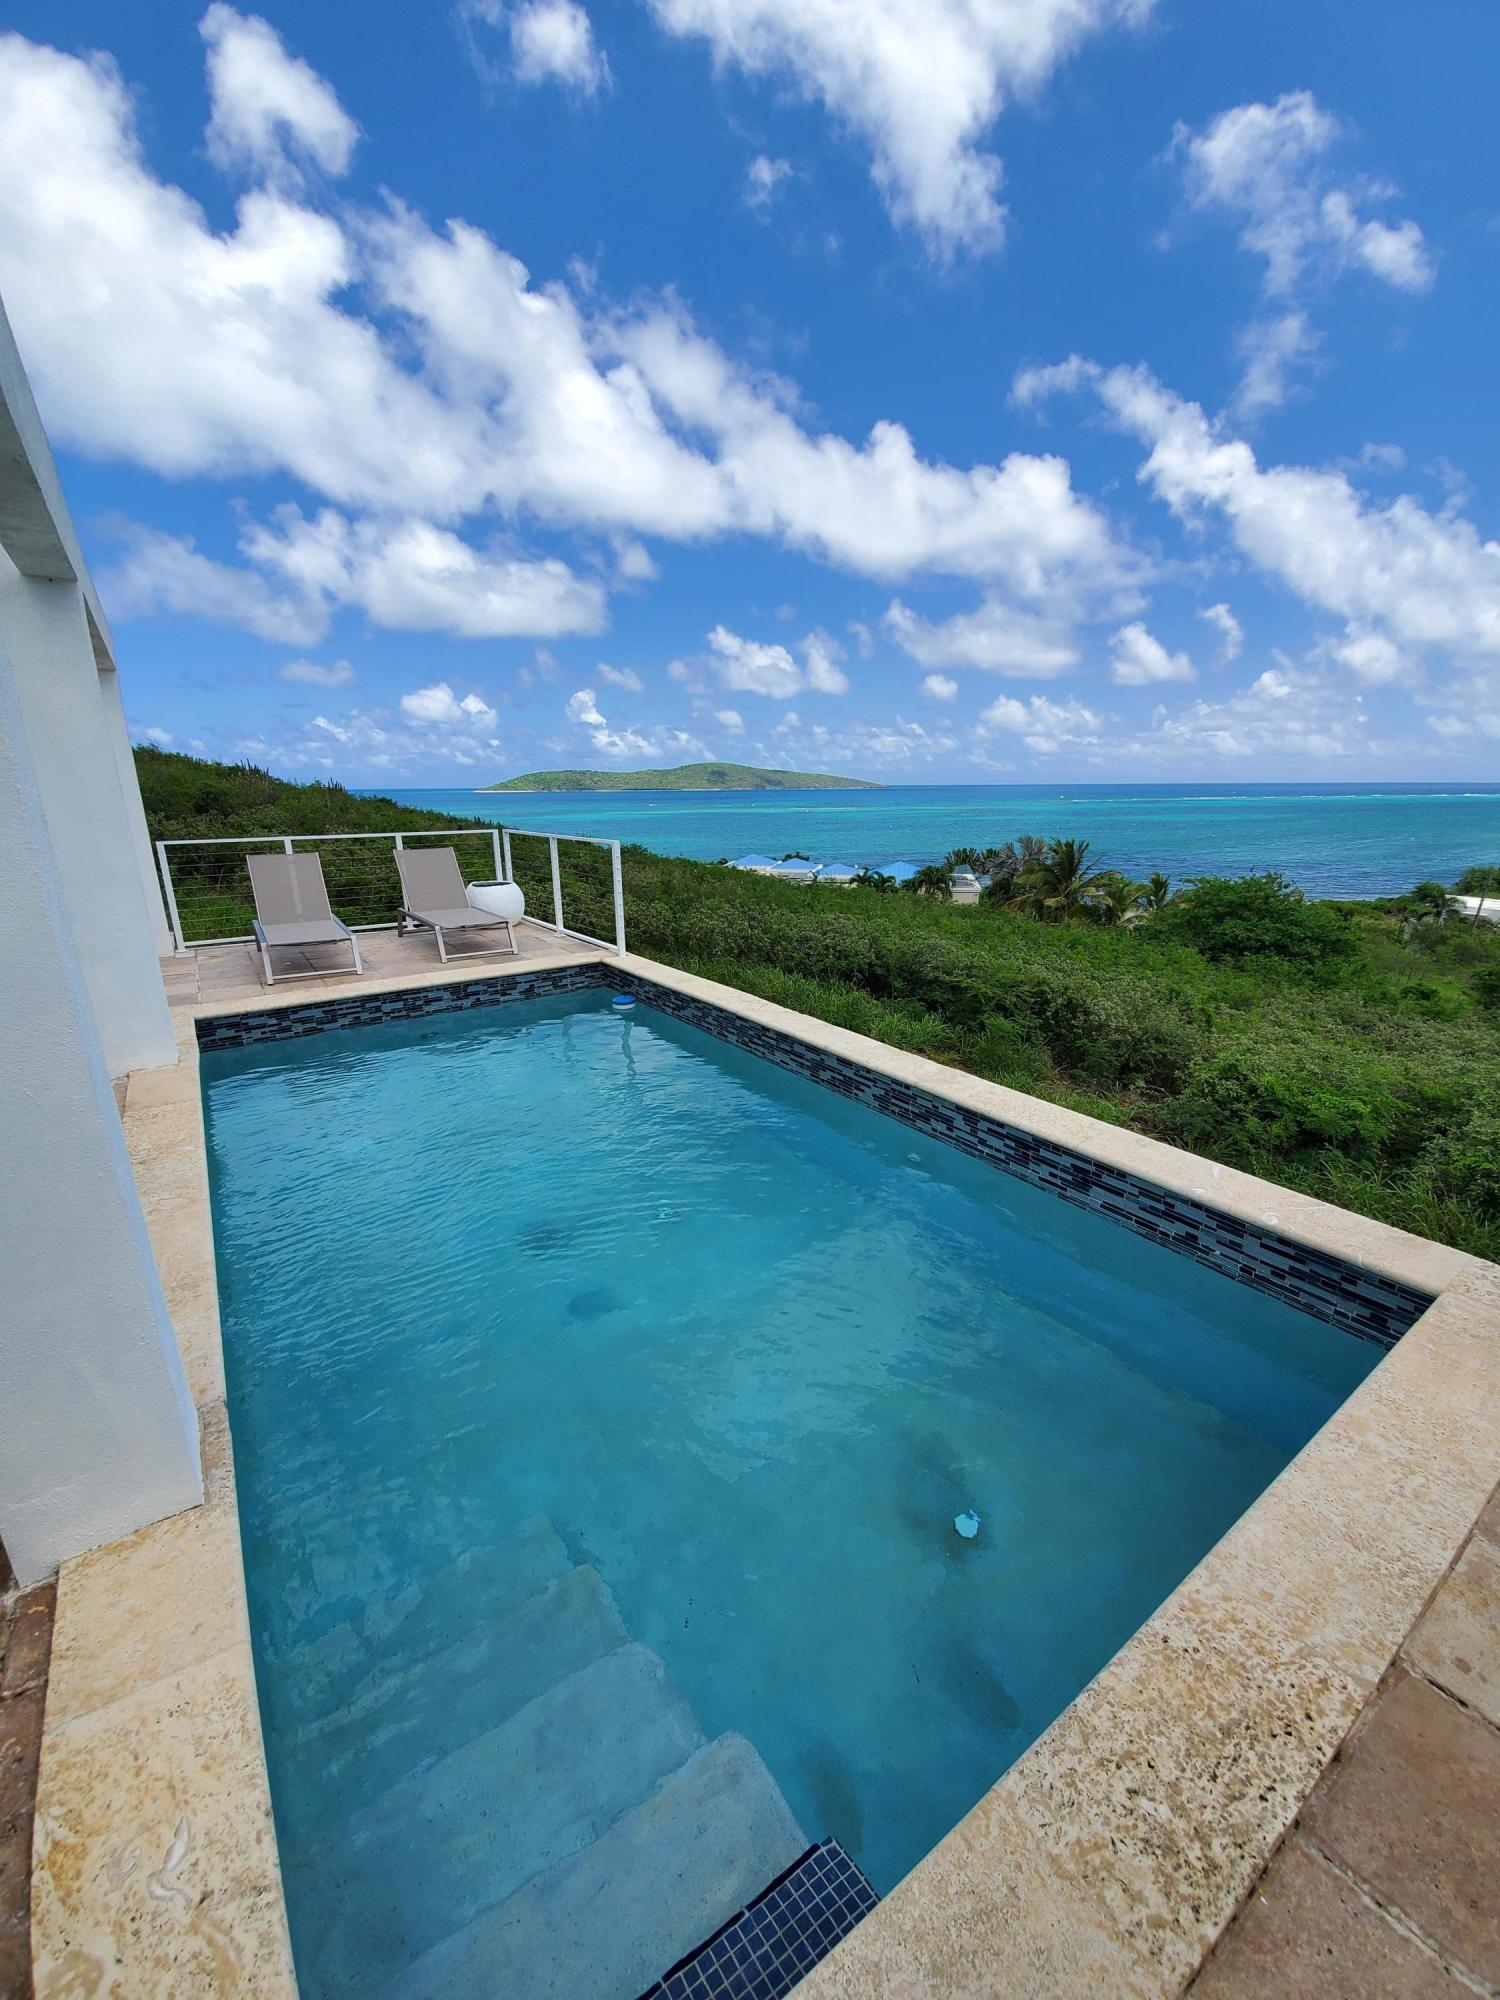 RE/MAX real estate, US Virgin Islands, Solitude, New Listing  Res Rental  Solitude EB